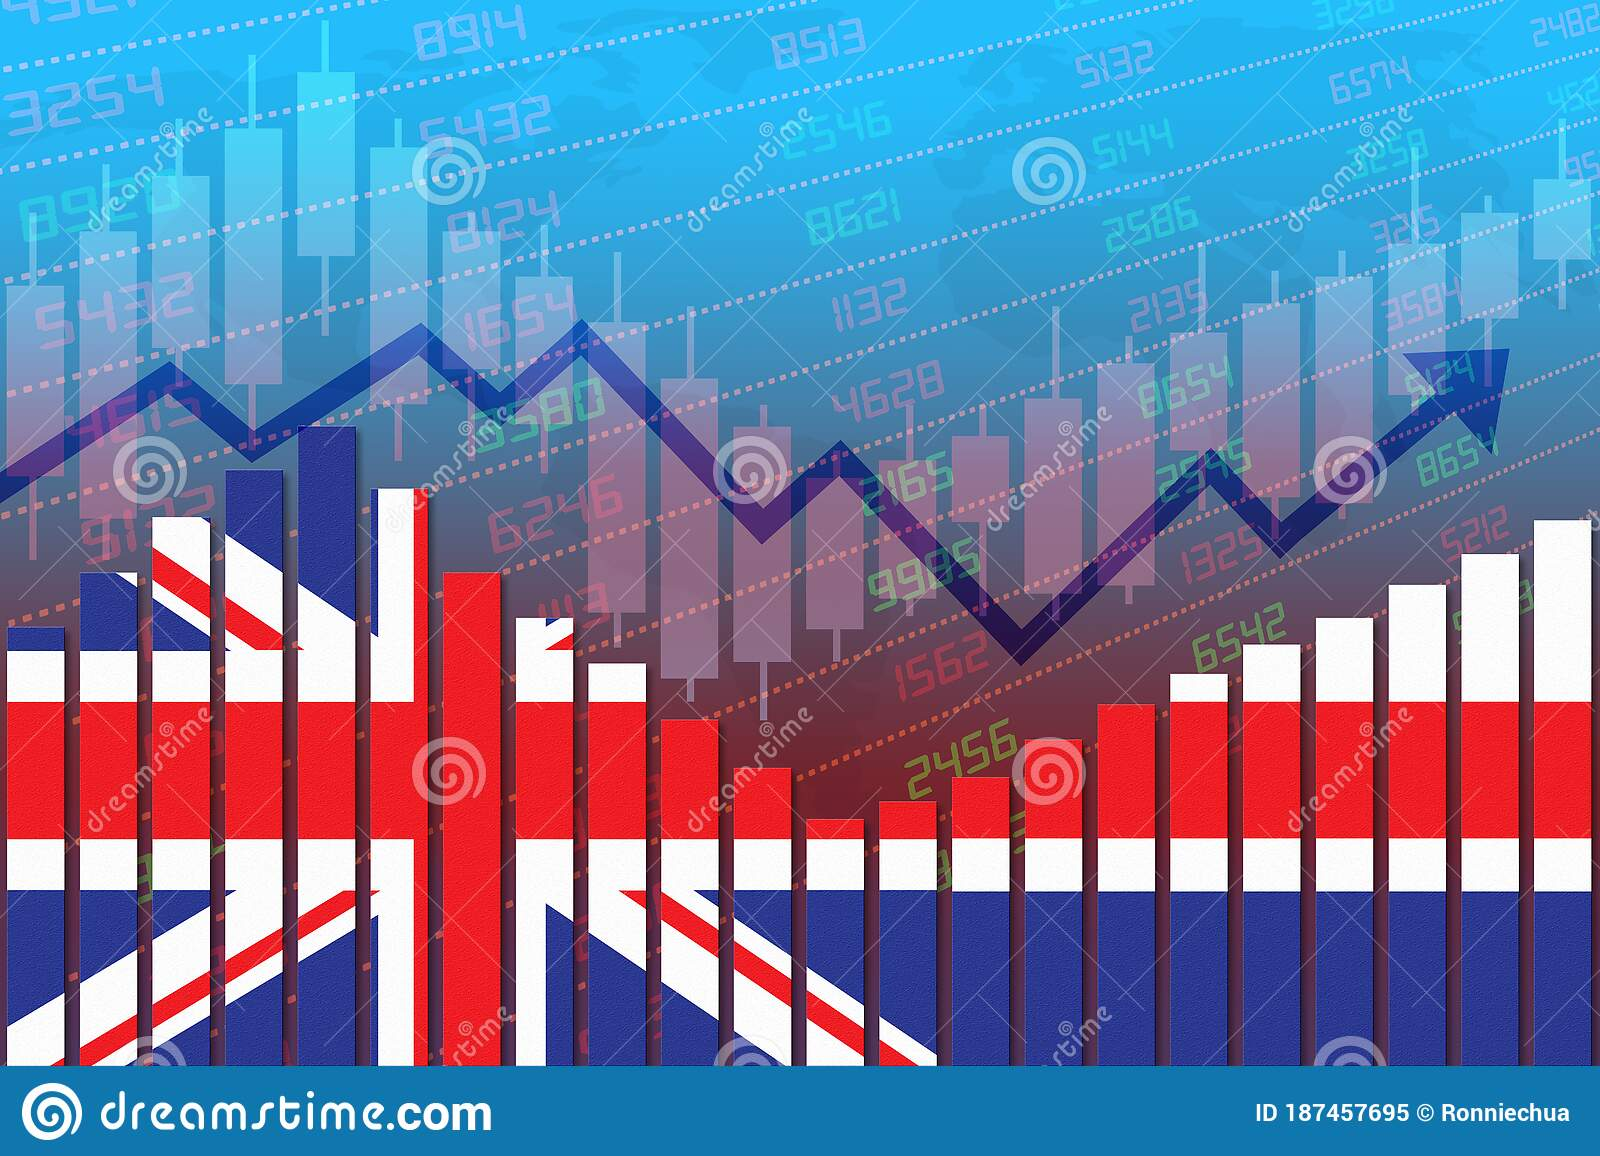 uk-economy-improves-returns-to-normal-crisis-flag-britain-bar-chart-concept-economic-recovery-business-187457695.jpg?profile=RESIZE_400x